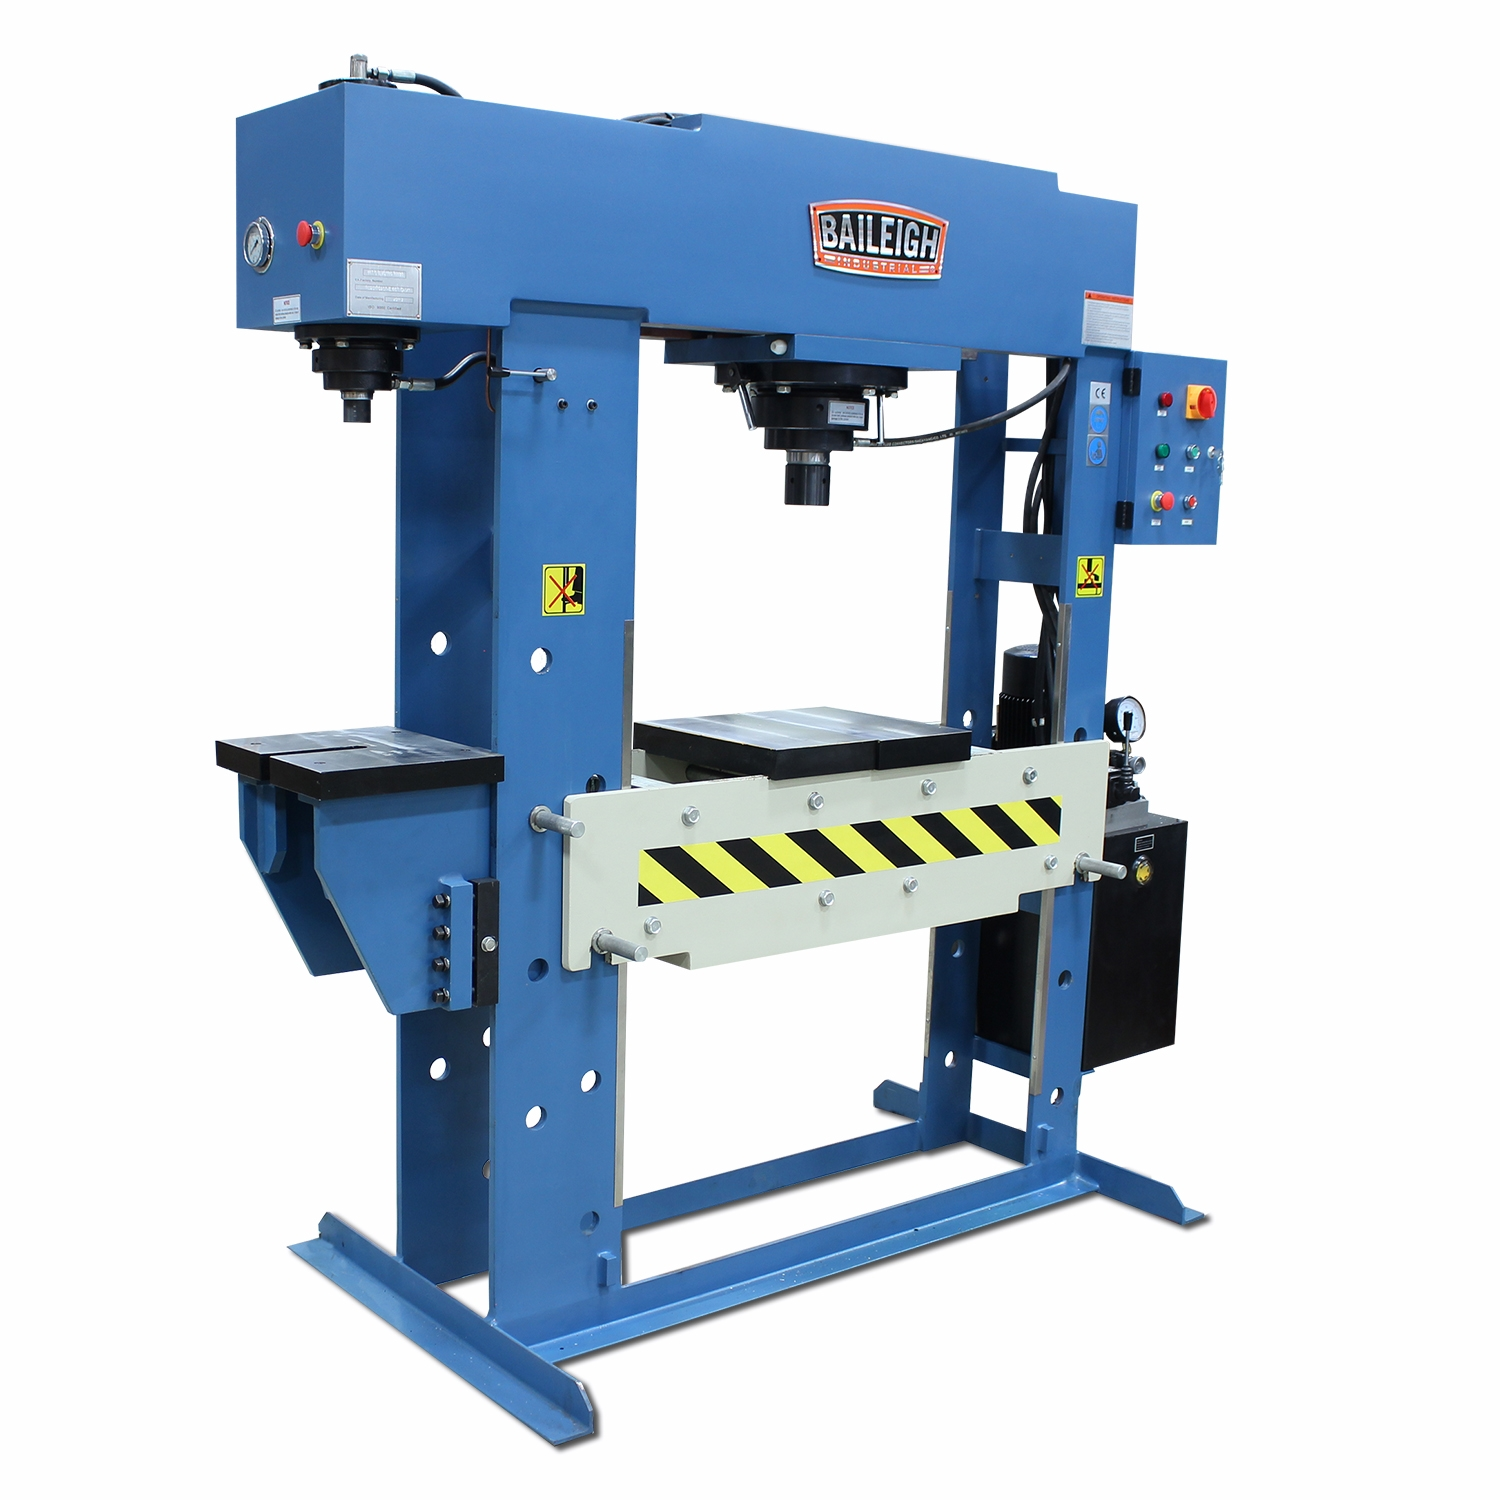 Baileigh HSP-60M-C TWO STATION HYDRAULIC PRESS